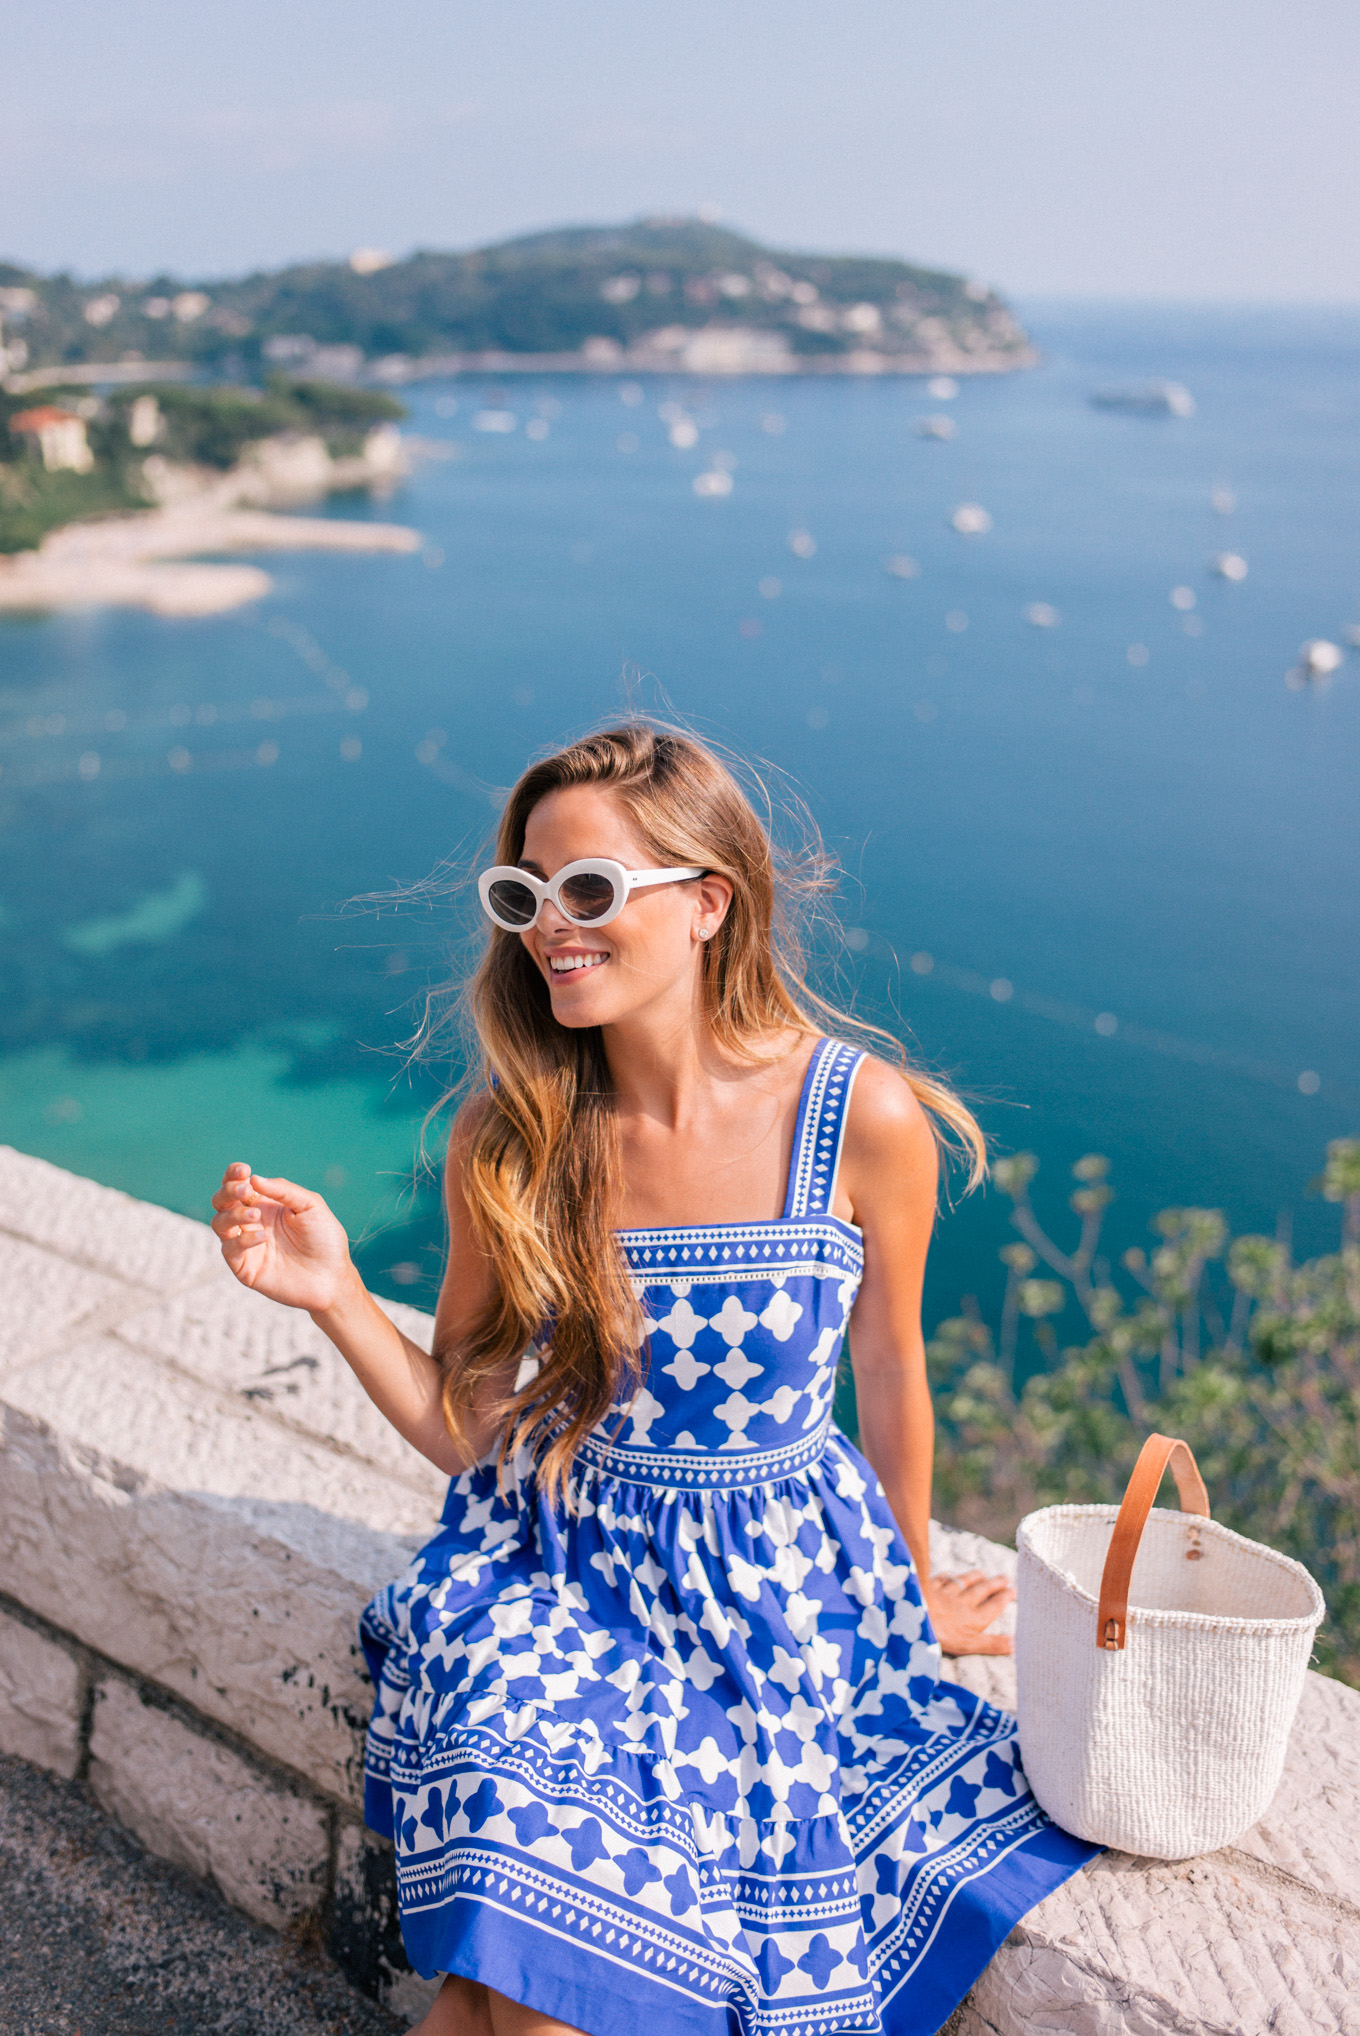 gmg-blue-and-white-nice-france-1007523